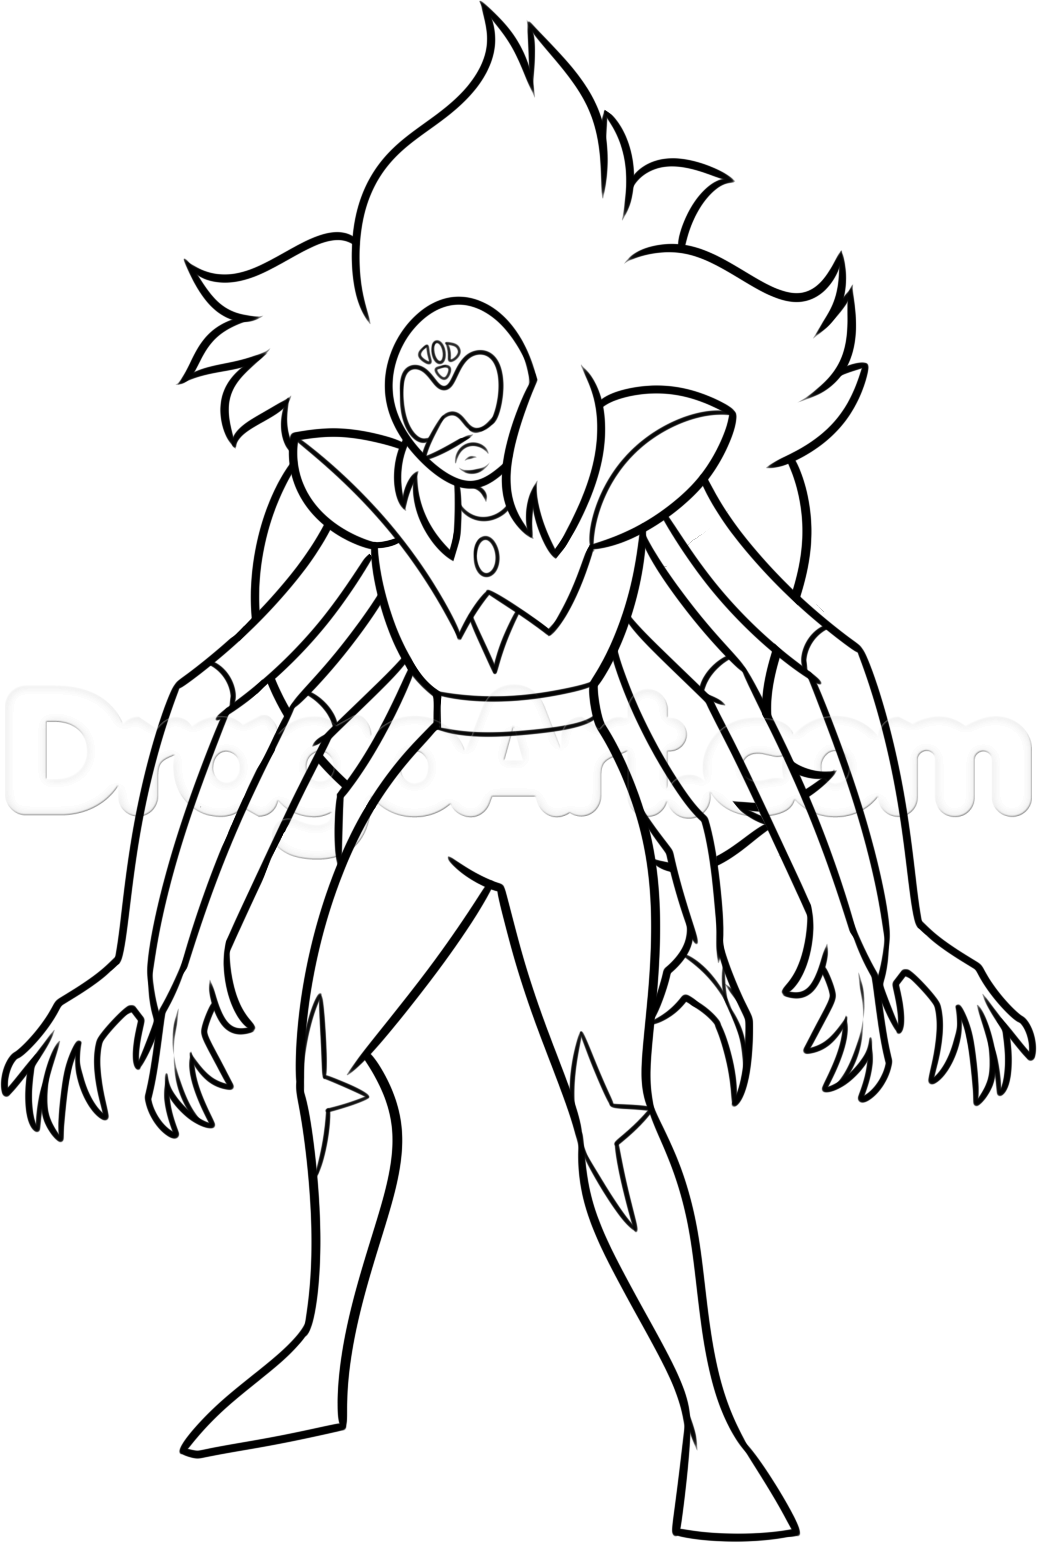 Alexandrite Steven Universe Character Coloring Pages | coloring ...